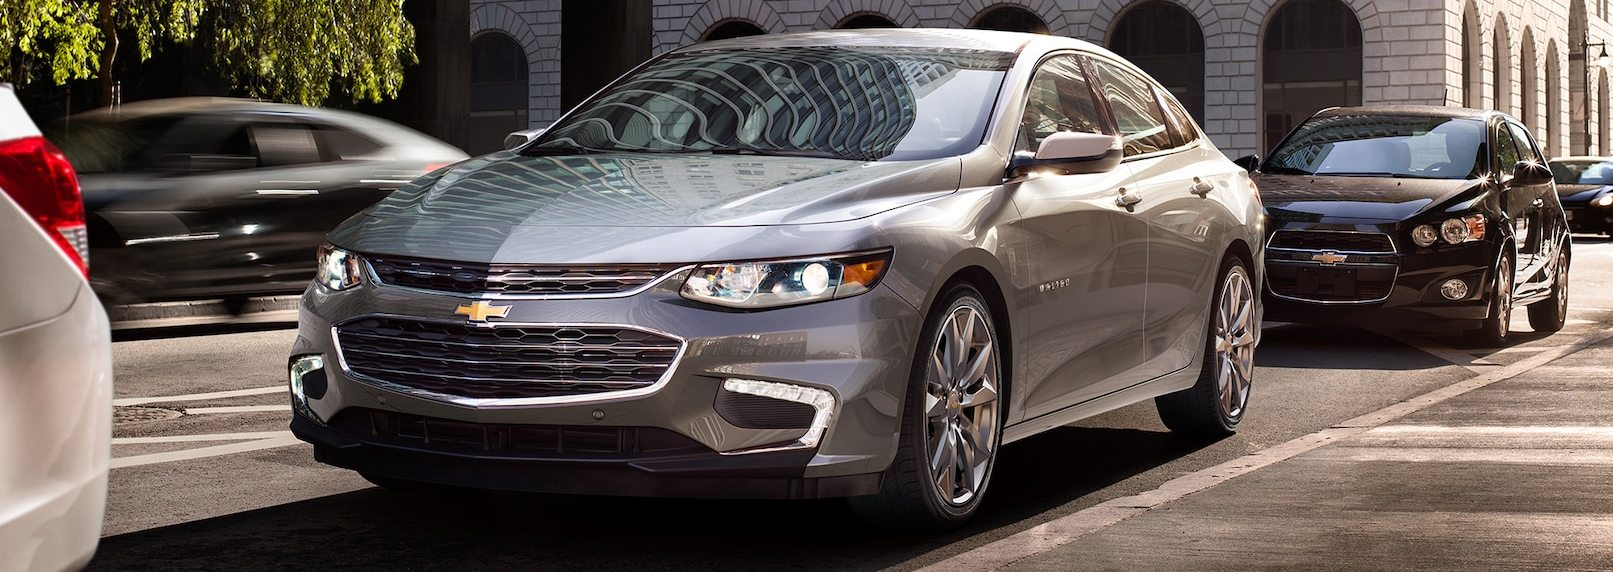 Pre-Owned Chevrolet Vehicles for Sale near Naperville, IL